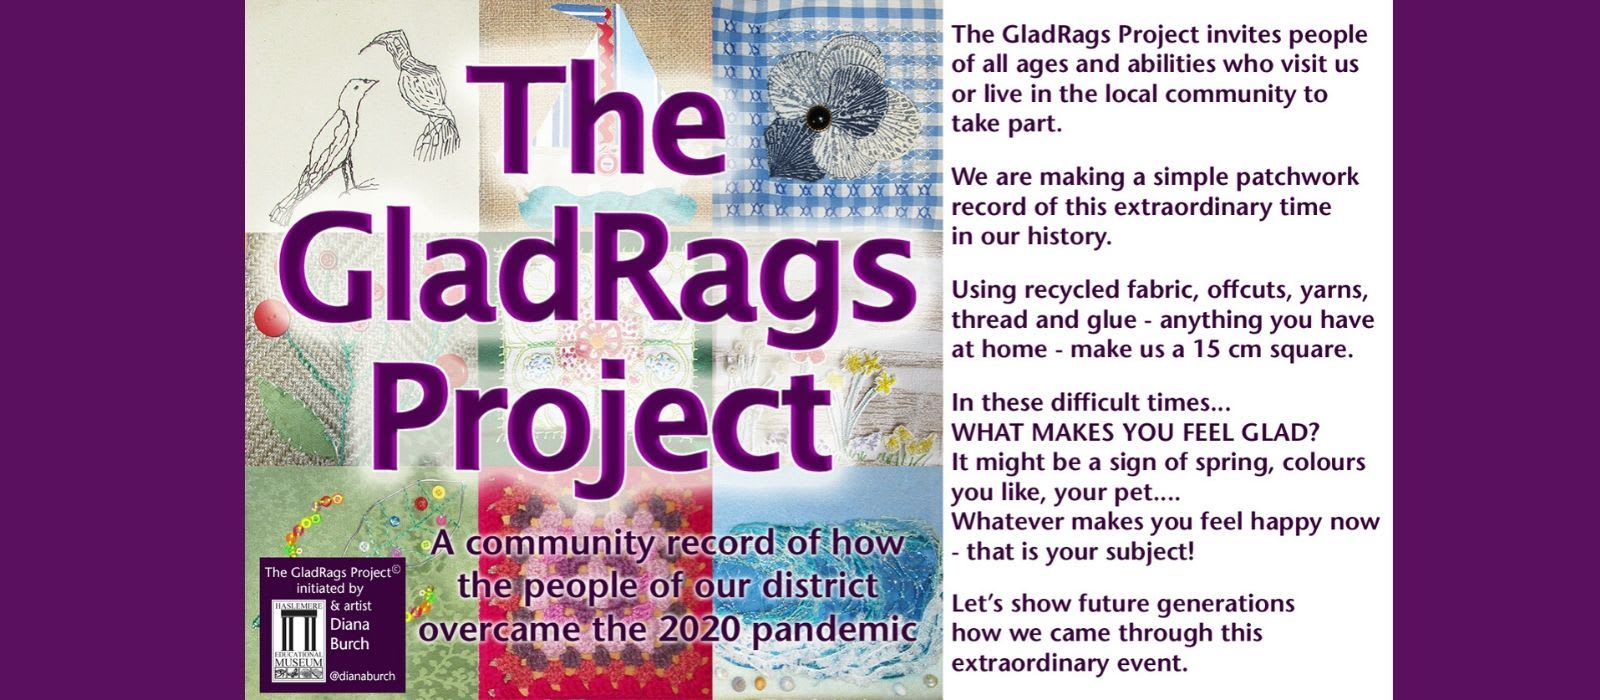 Welcome to The GladRags Project